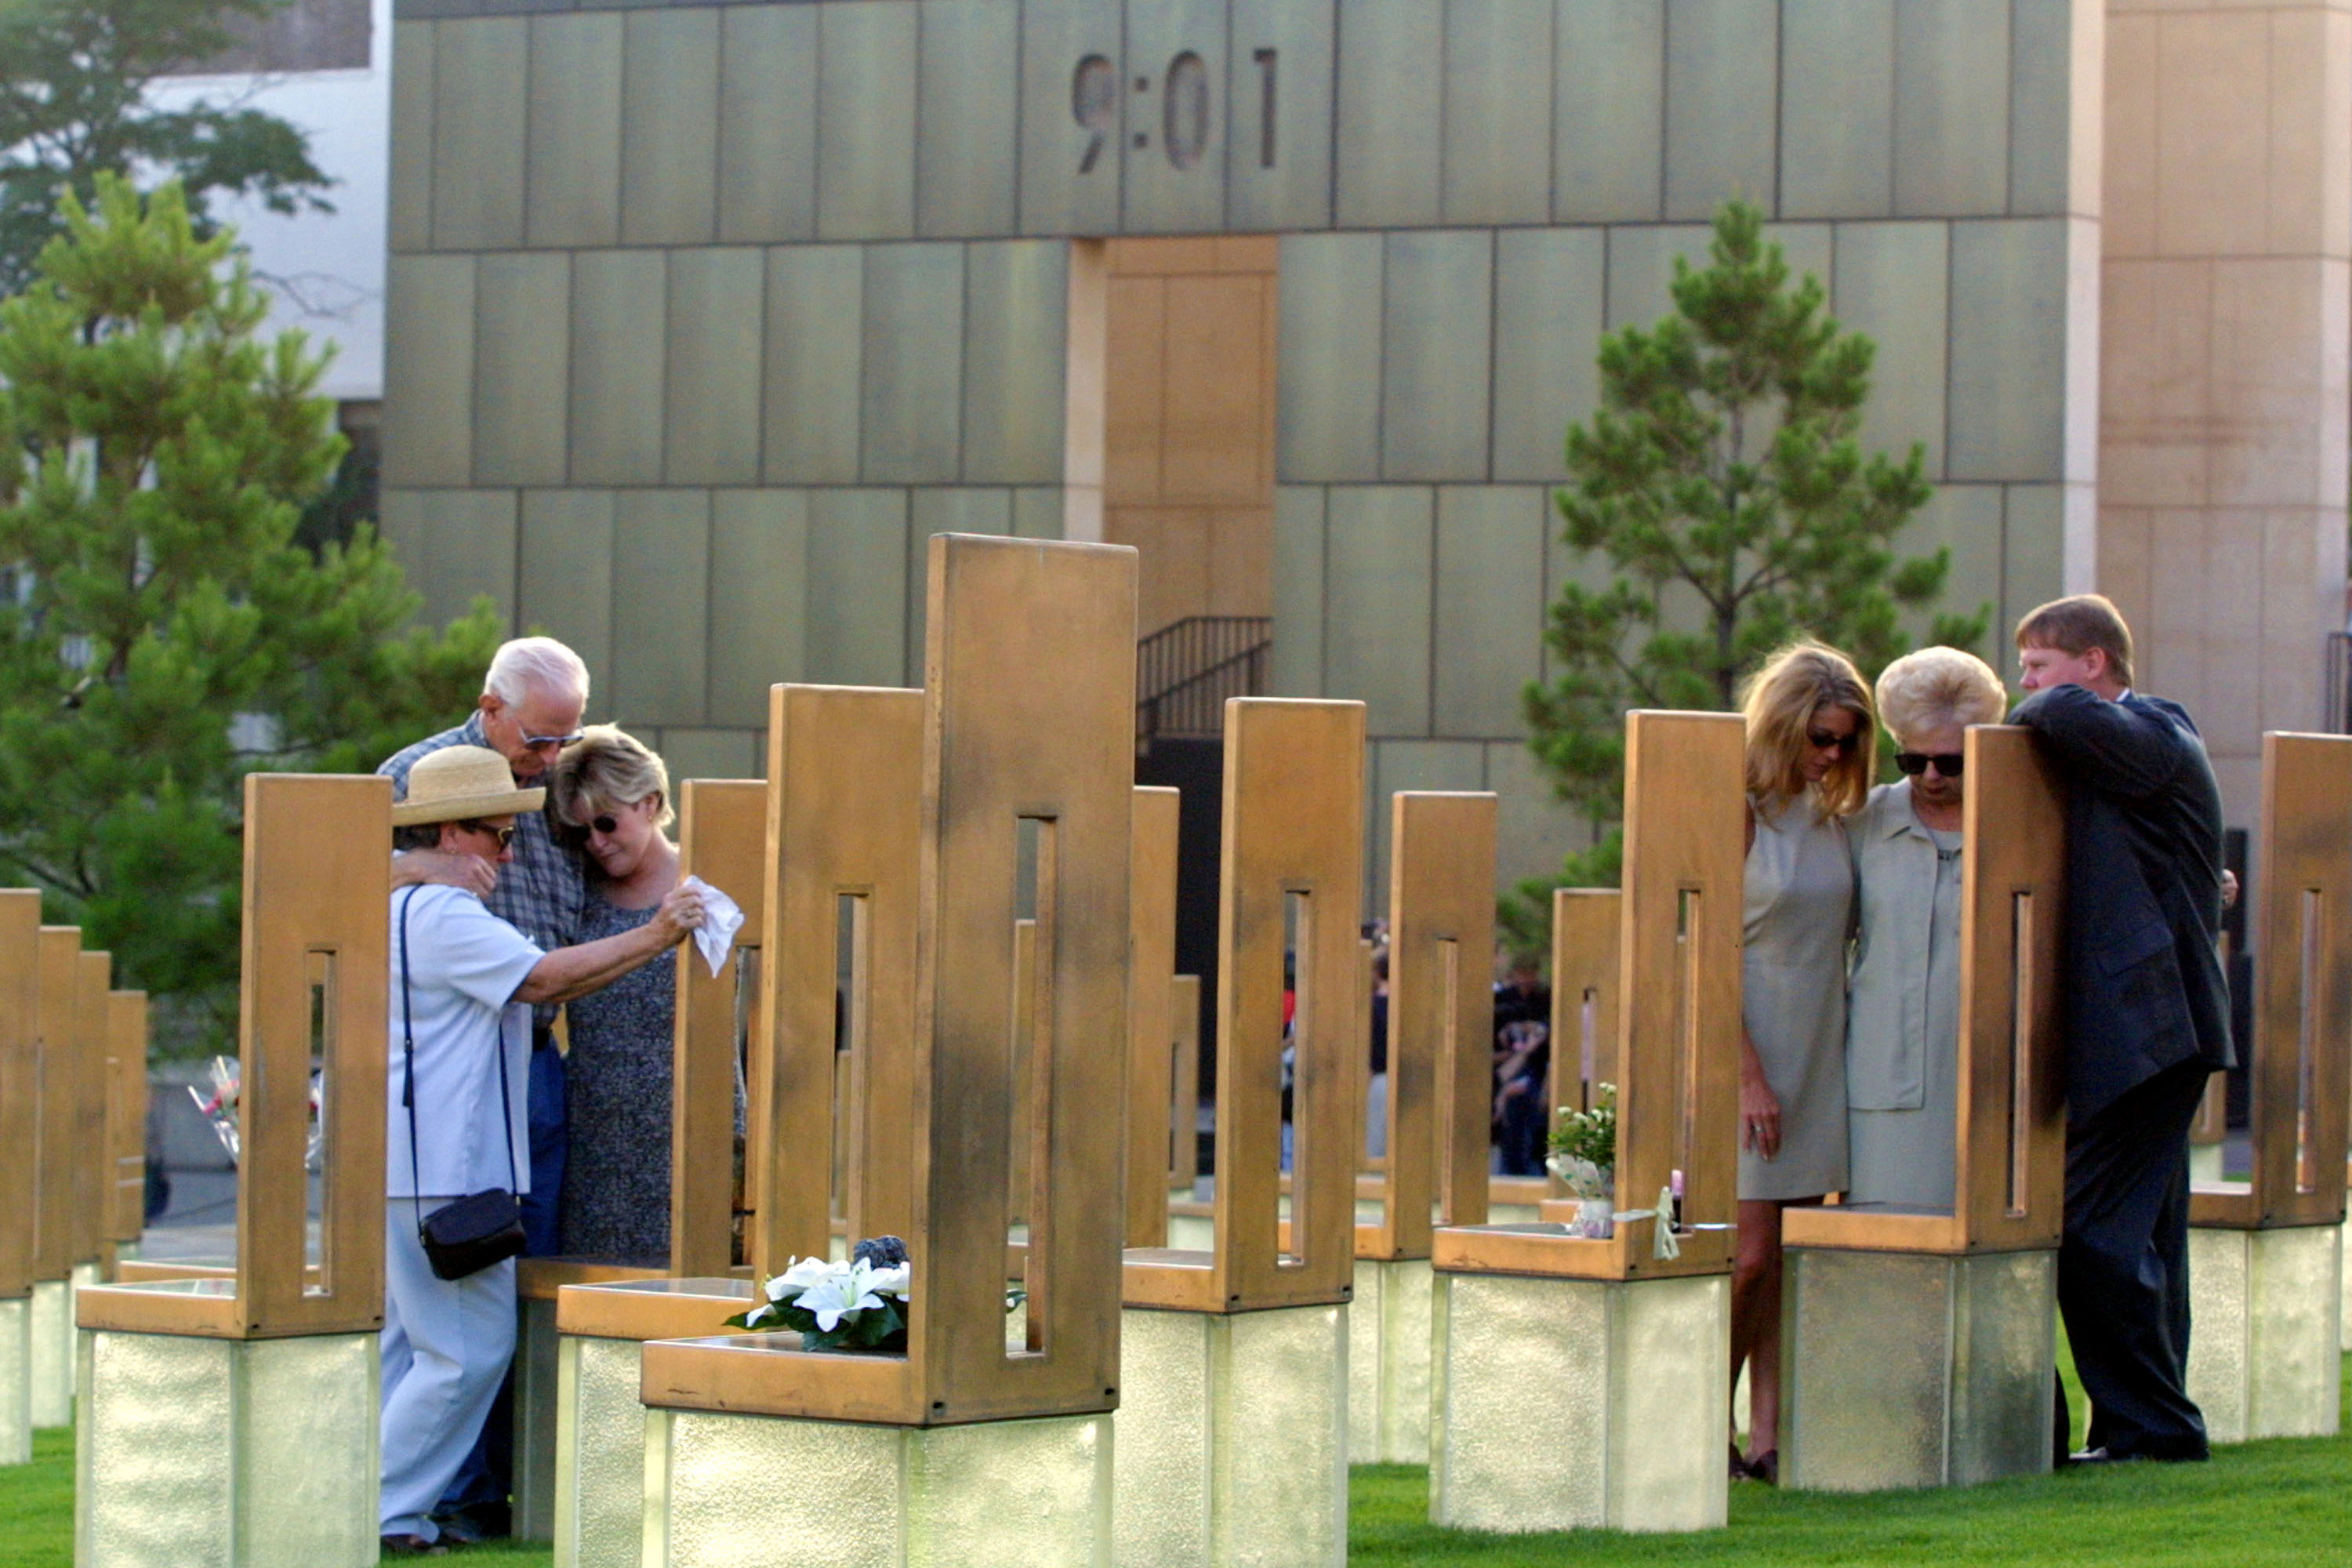 Mourners gather at the Oklahoma City National Memorial around chairs representing relatives killed during the 1995 bombing, on the day perpetrator Timothy McVeigh was executed, June 11, 2001. On the wall behind them, the time when the bomb was detonated is recorded at 9:01. (Joe Raedle/Getty Images)